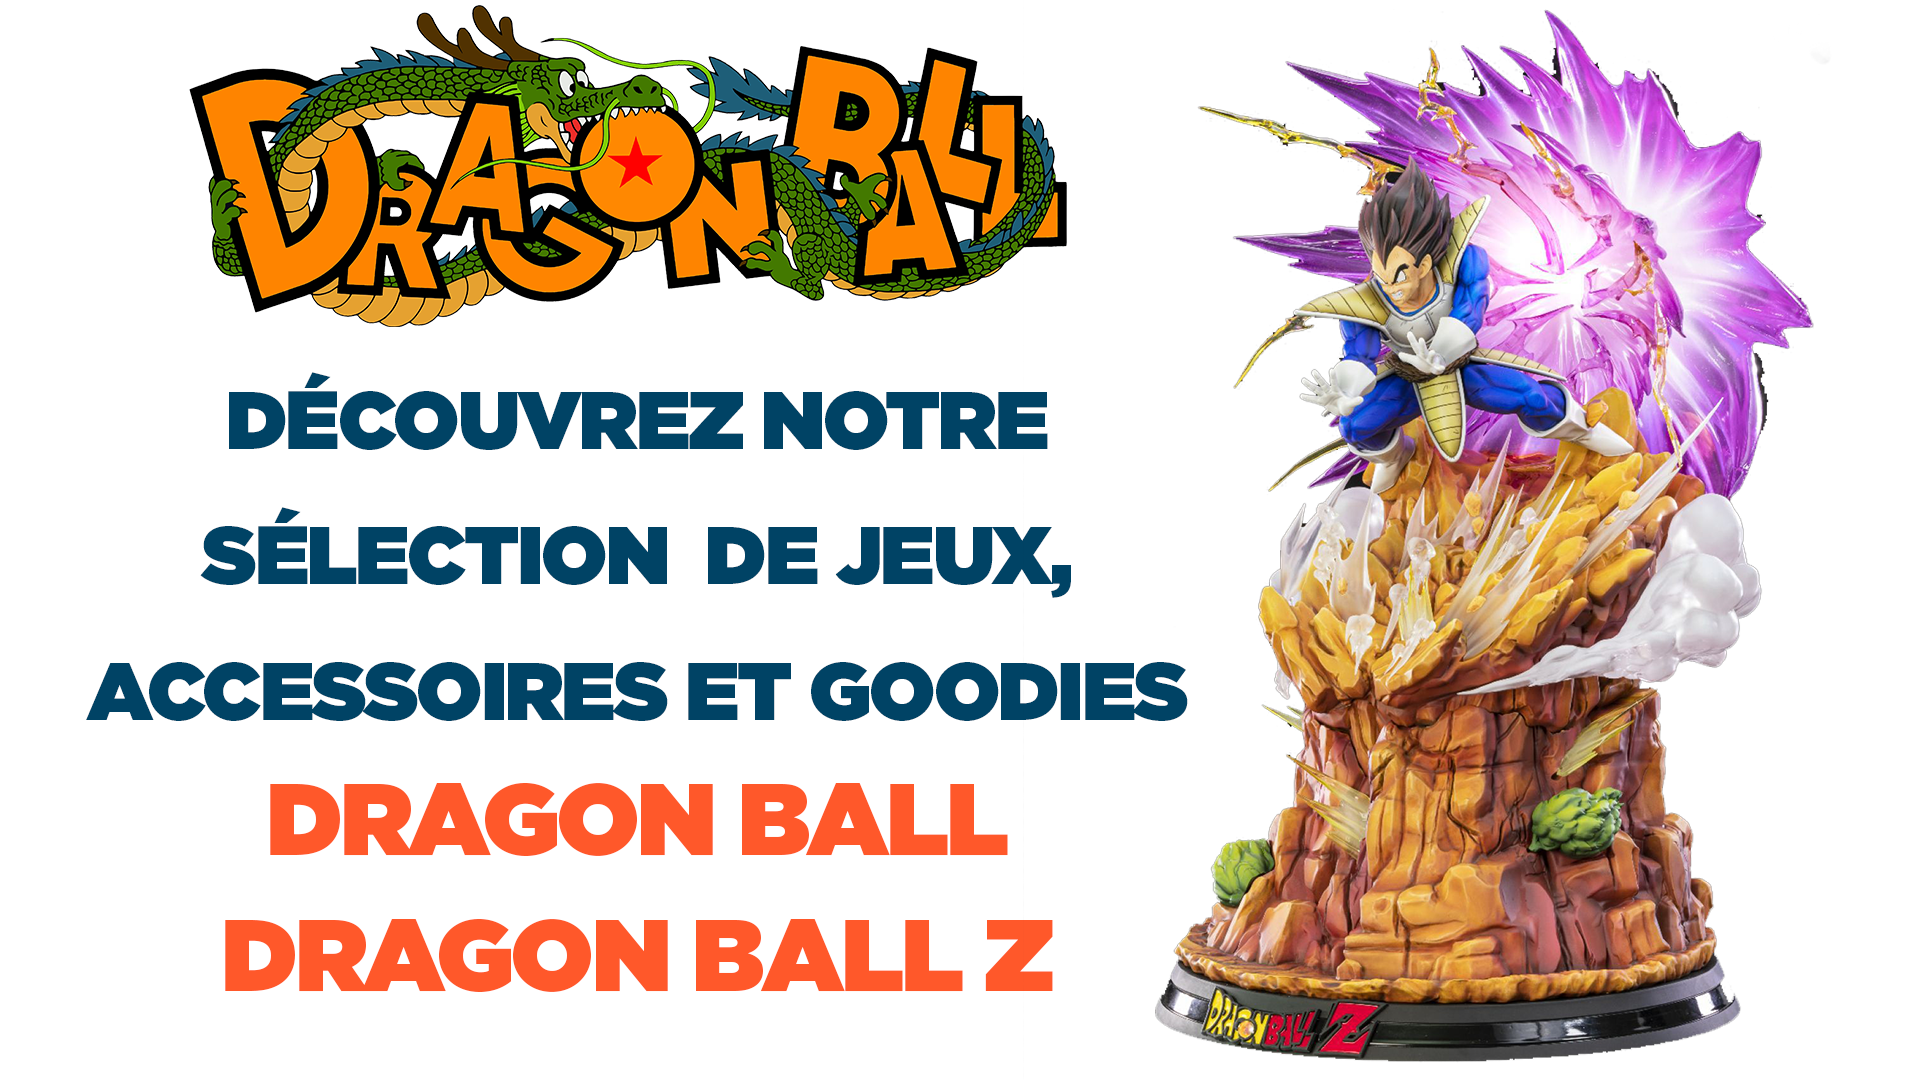 Dragon Ball: games, Blu-ray, t-shirts, posters, goodies ... Our selection of the best offers